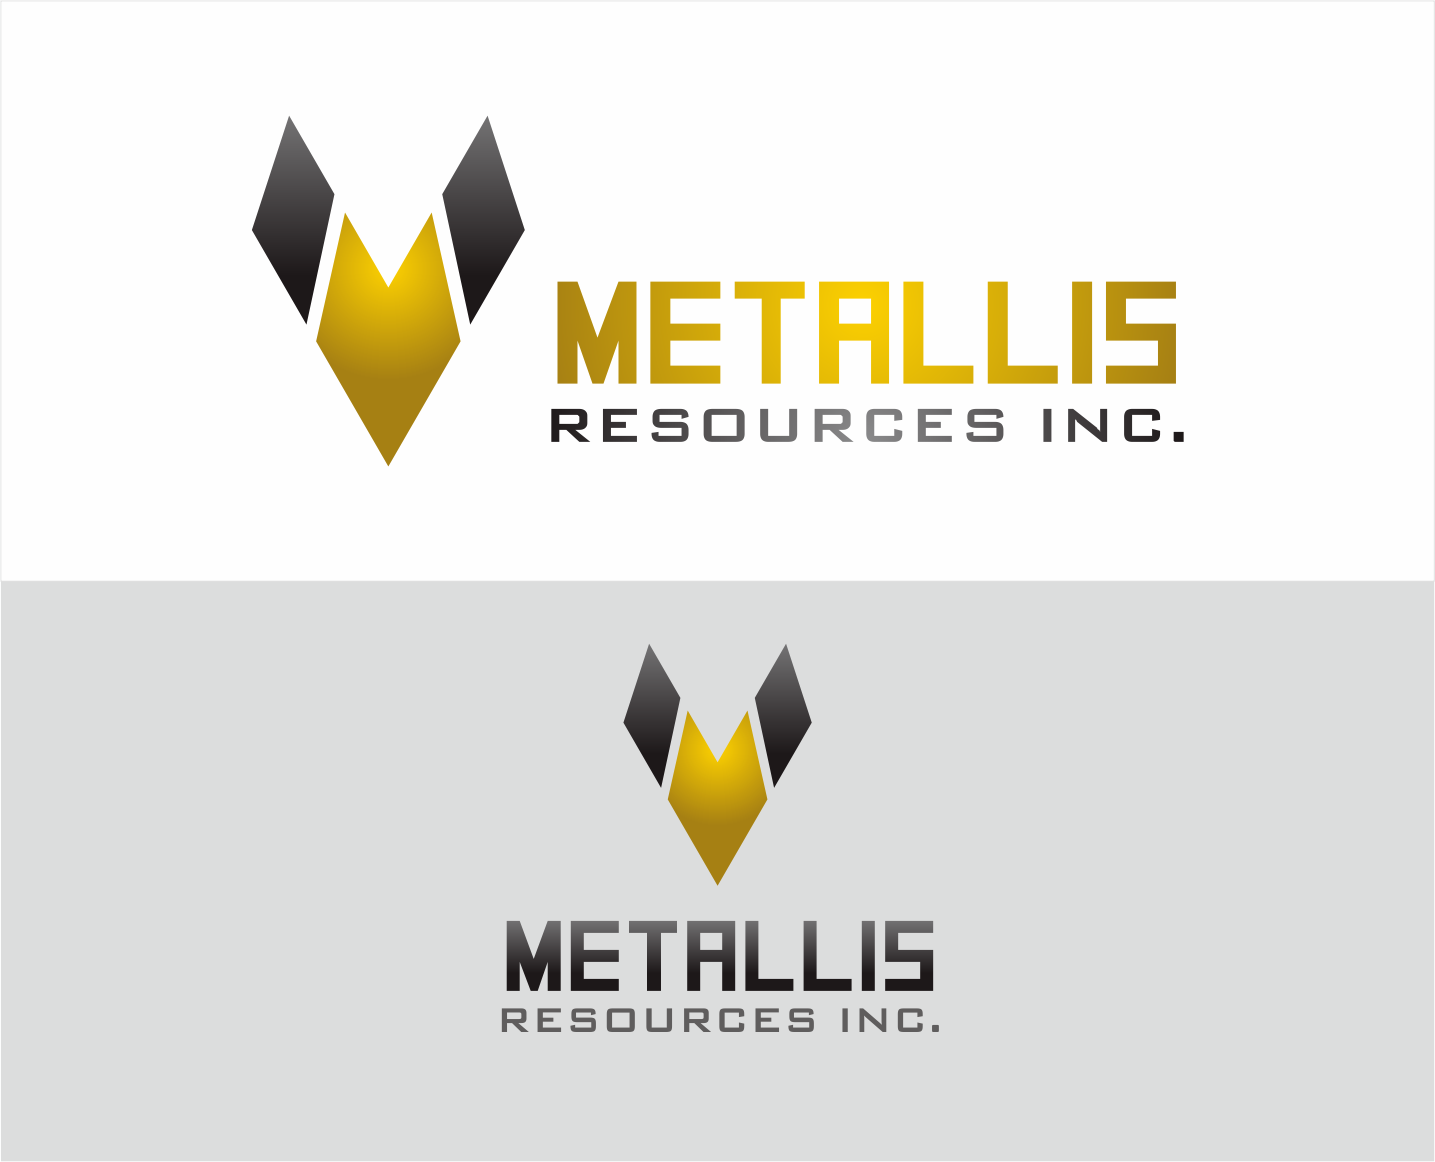 Logo Design by Armada Jamaluddin - Entry No. 132 in the Logo Design Contest Metallis Resources Inc Logo Design.